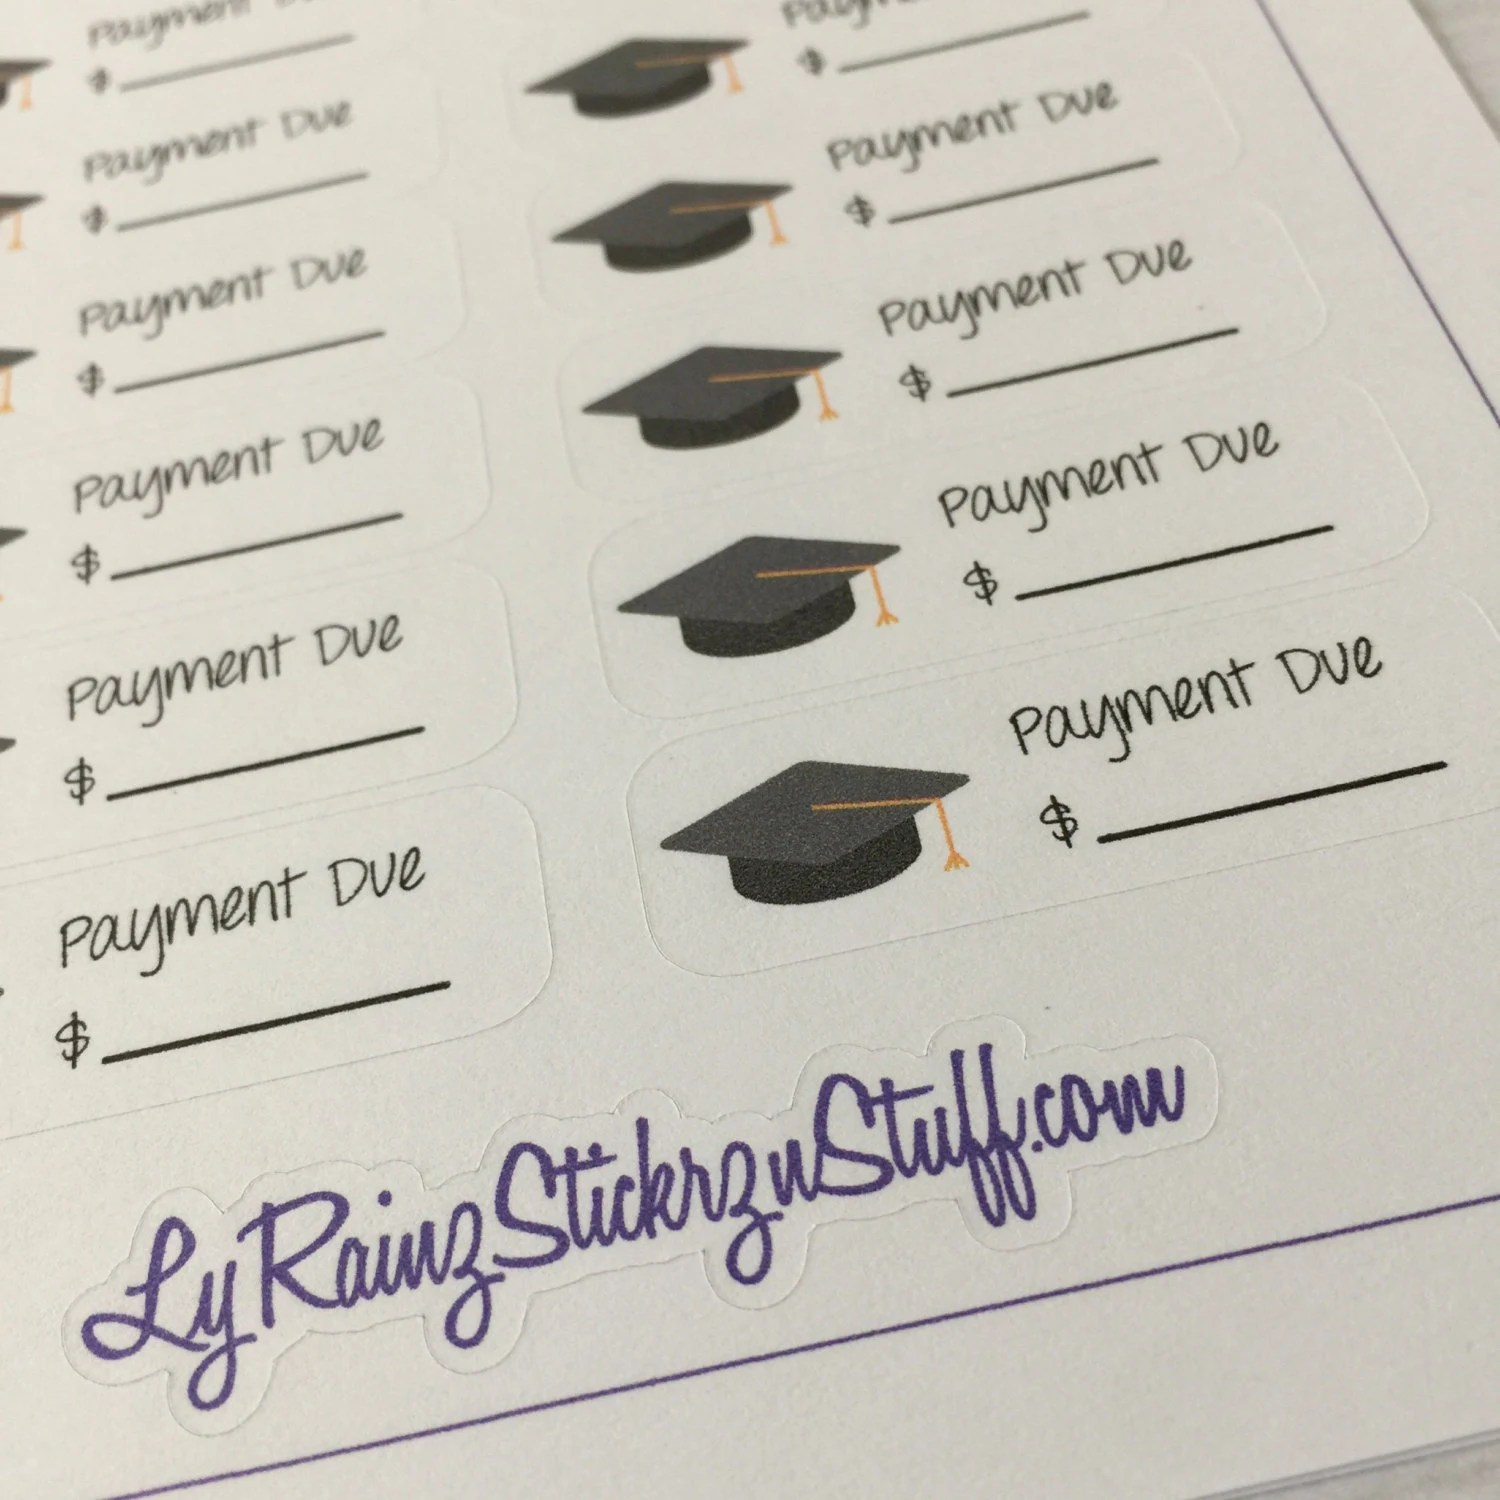 Student Loan Payment Due Sticker Strips for the weekly layout